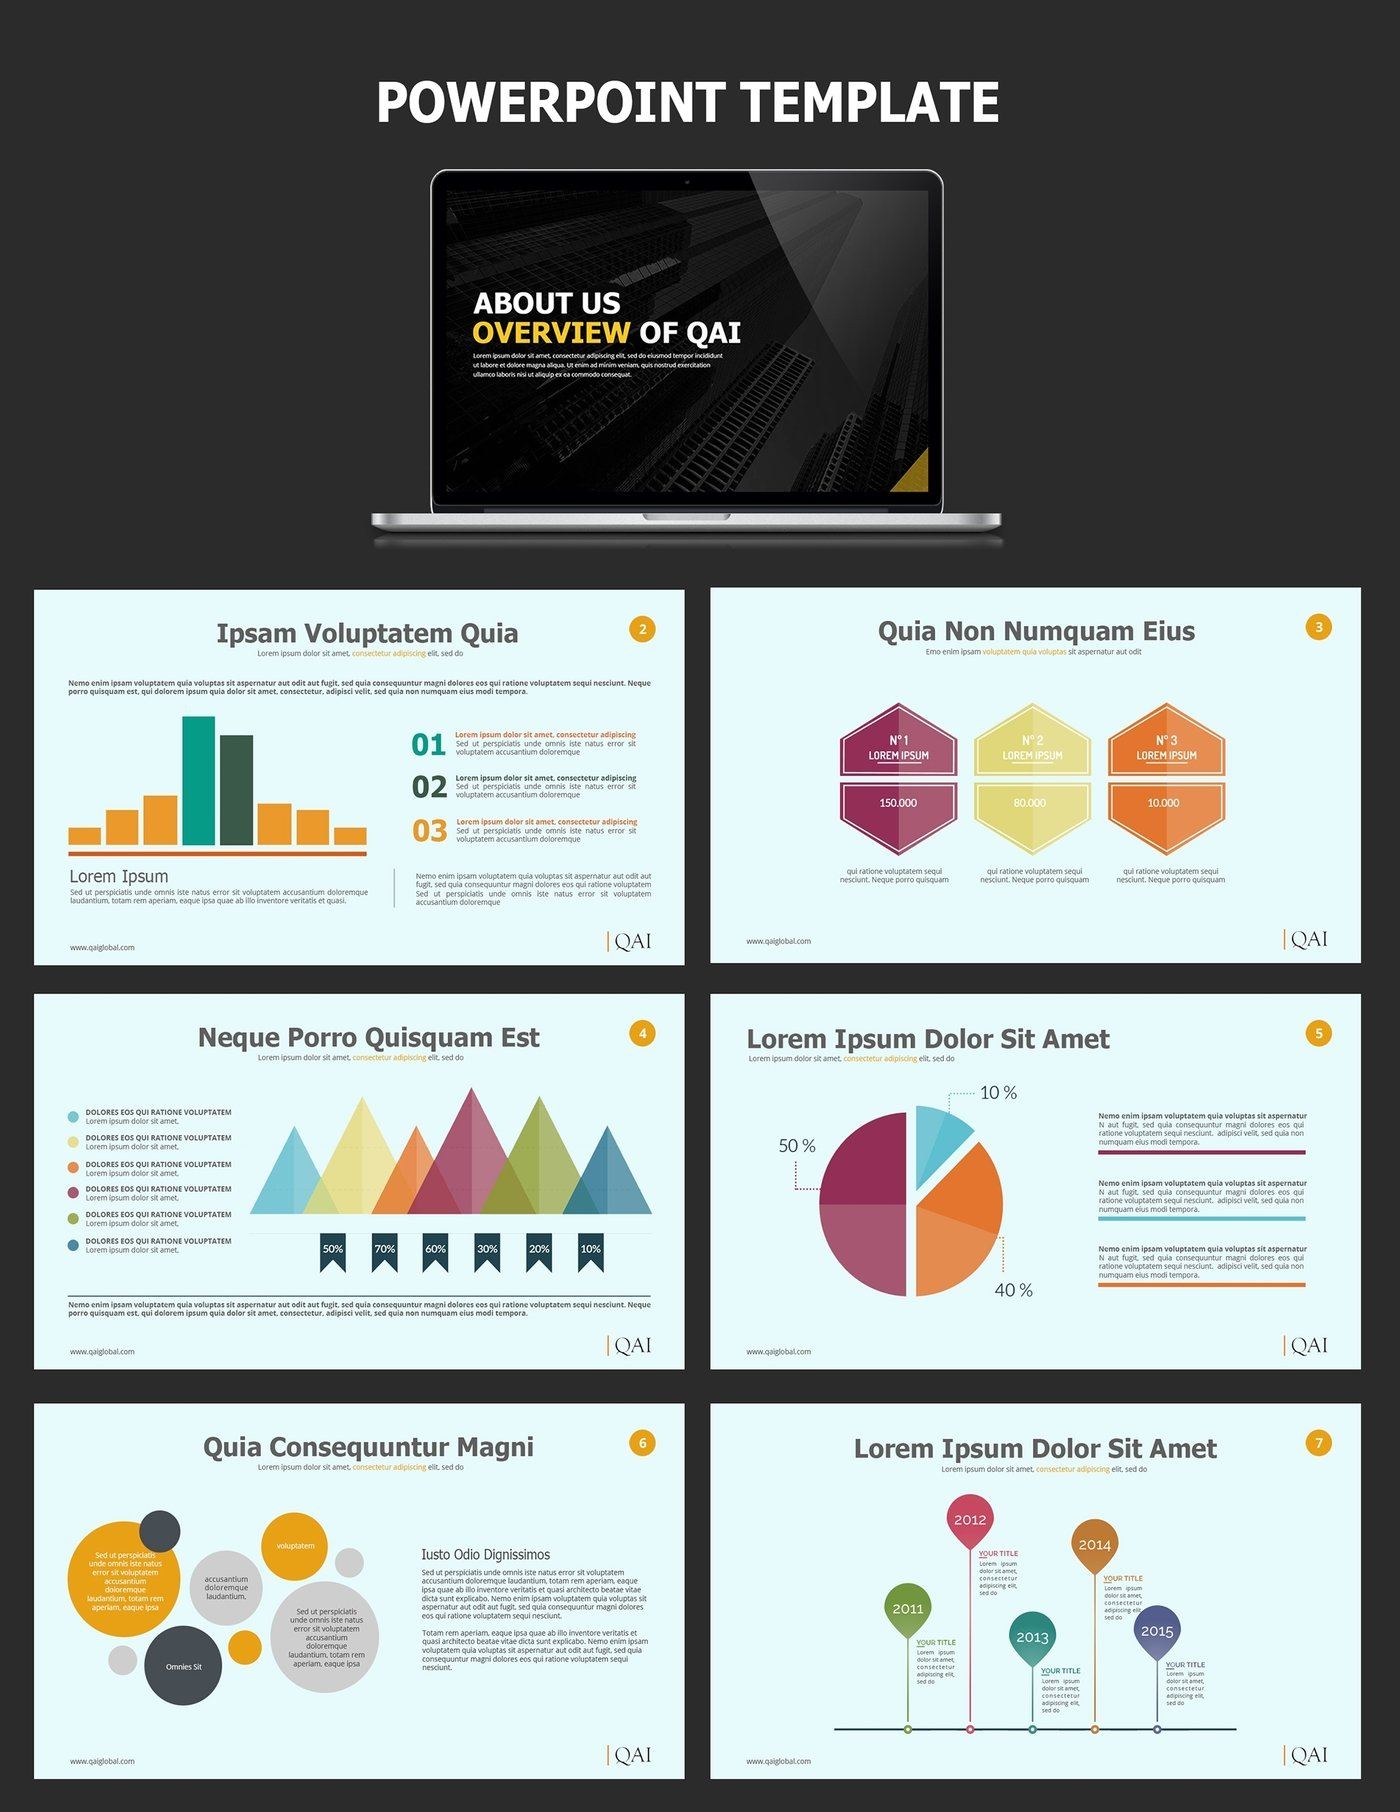 Infographic Style Powerpoint Deck For Qai By Cj Designs At Coroflot Com